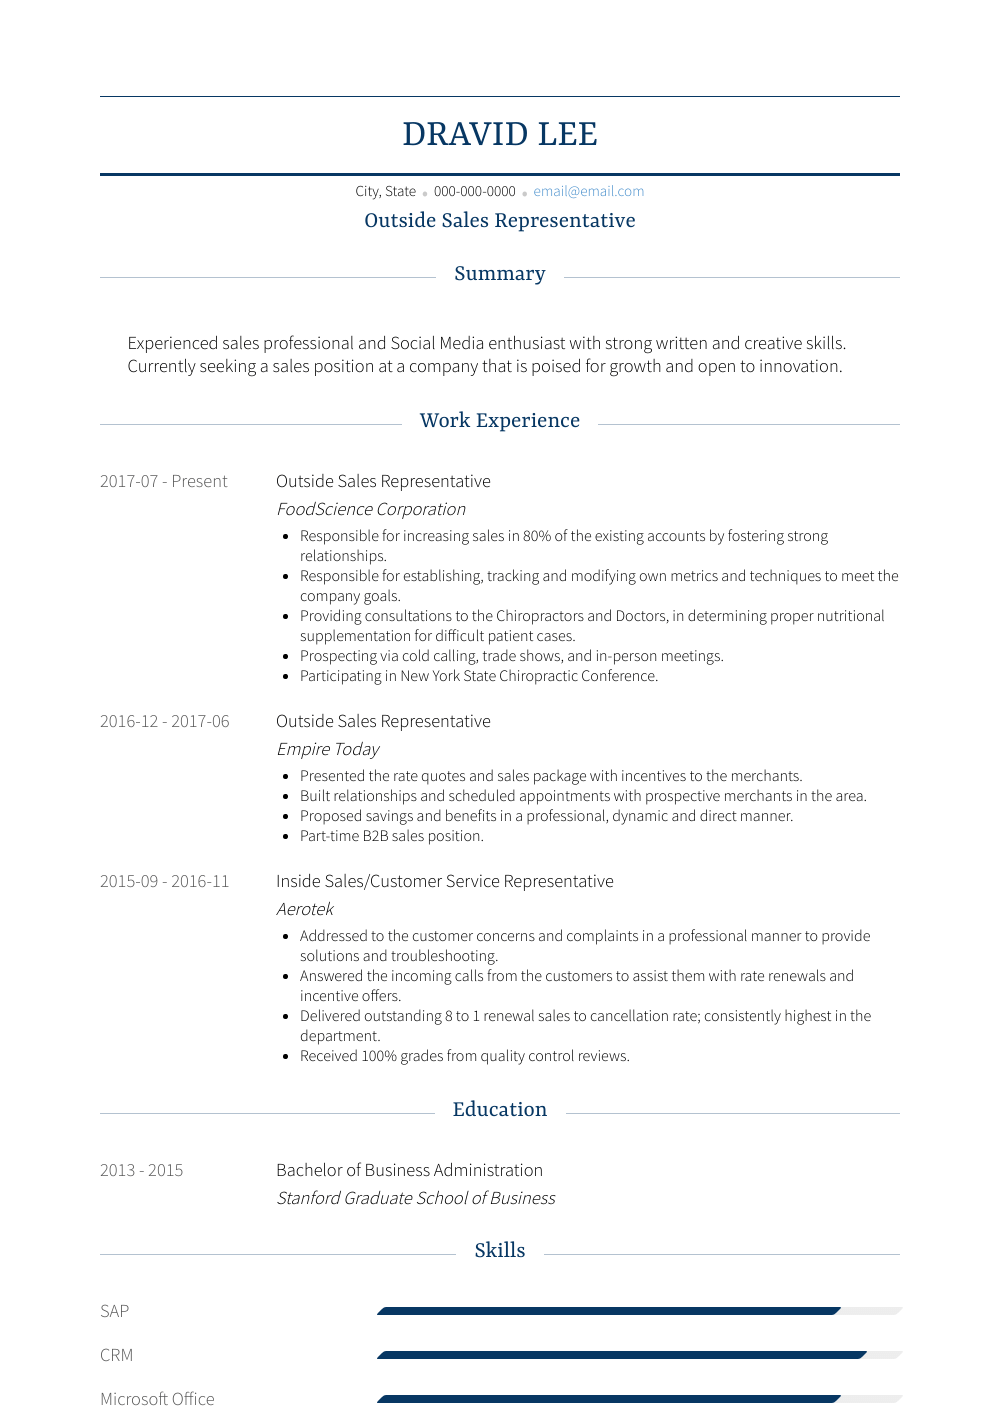 Outside Sales Representative Resume Sample and Template